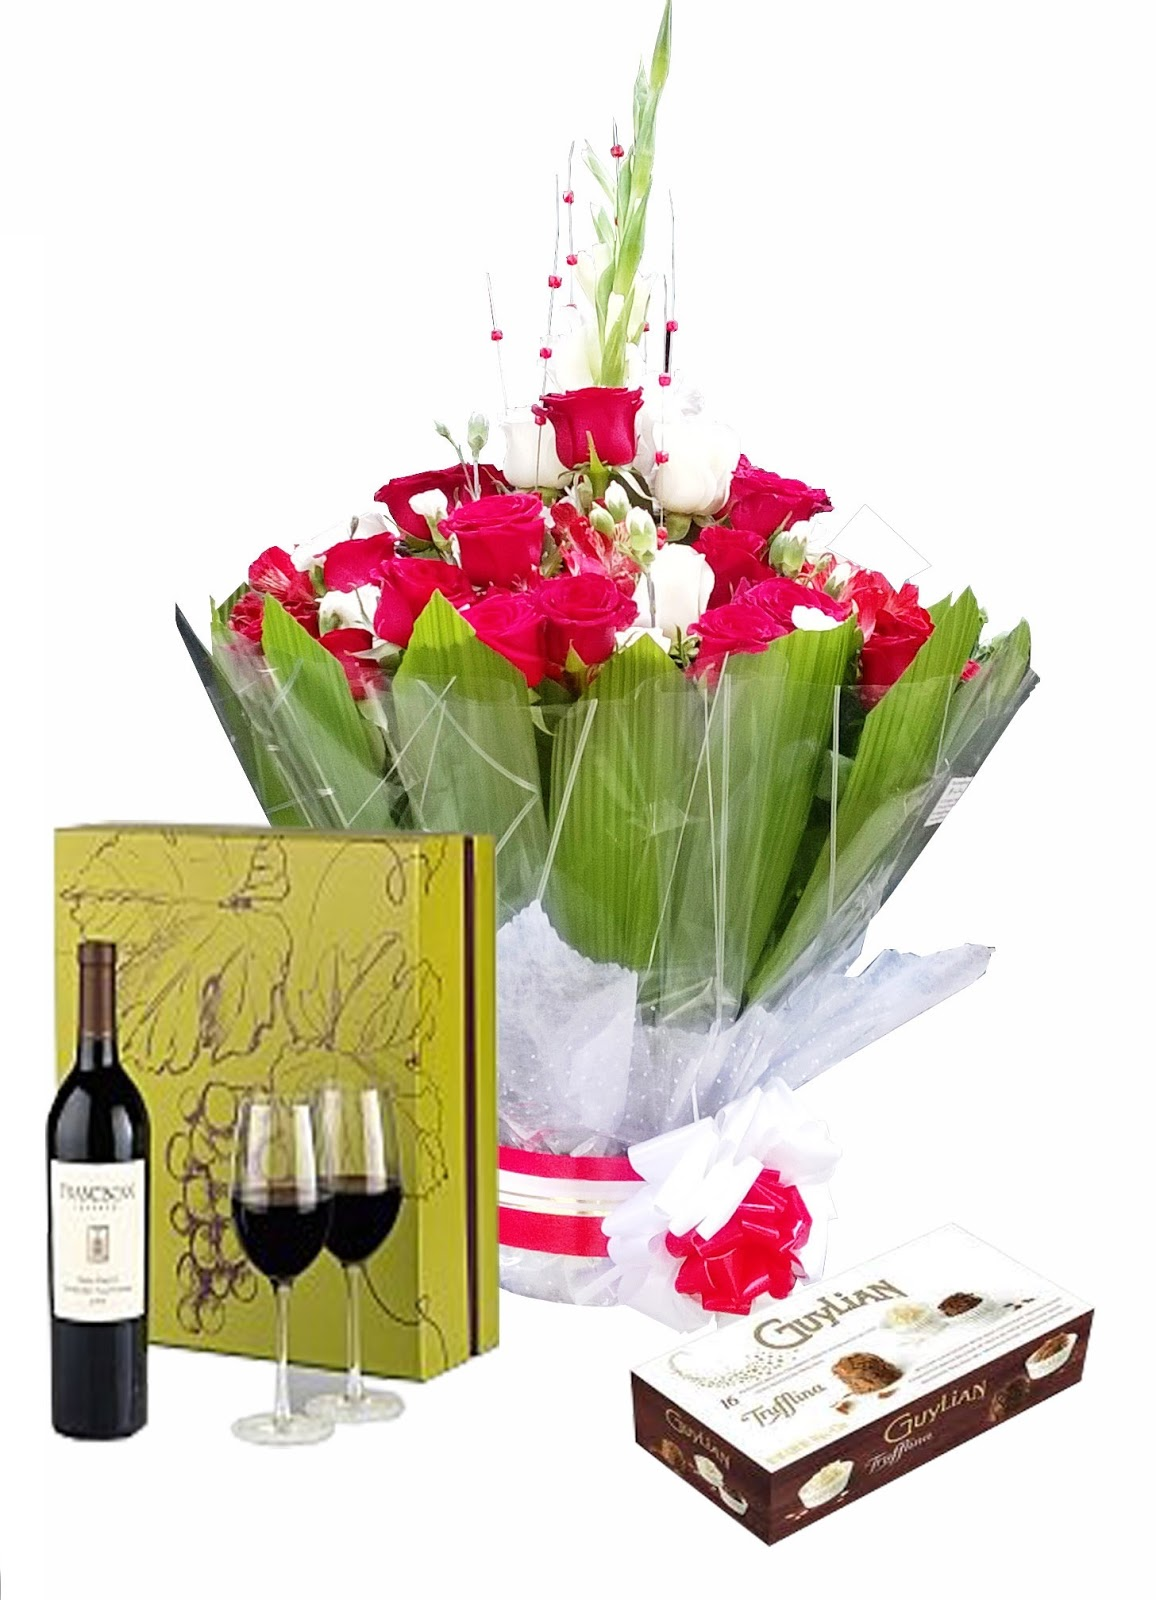 Birthday Flowers Delivered Make Wonderful Surprises So If Youre Looking For A Beautiful Gift We Simona Nairobi Kenya Hope Can Inspire